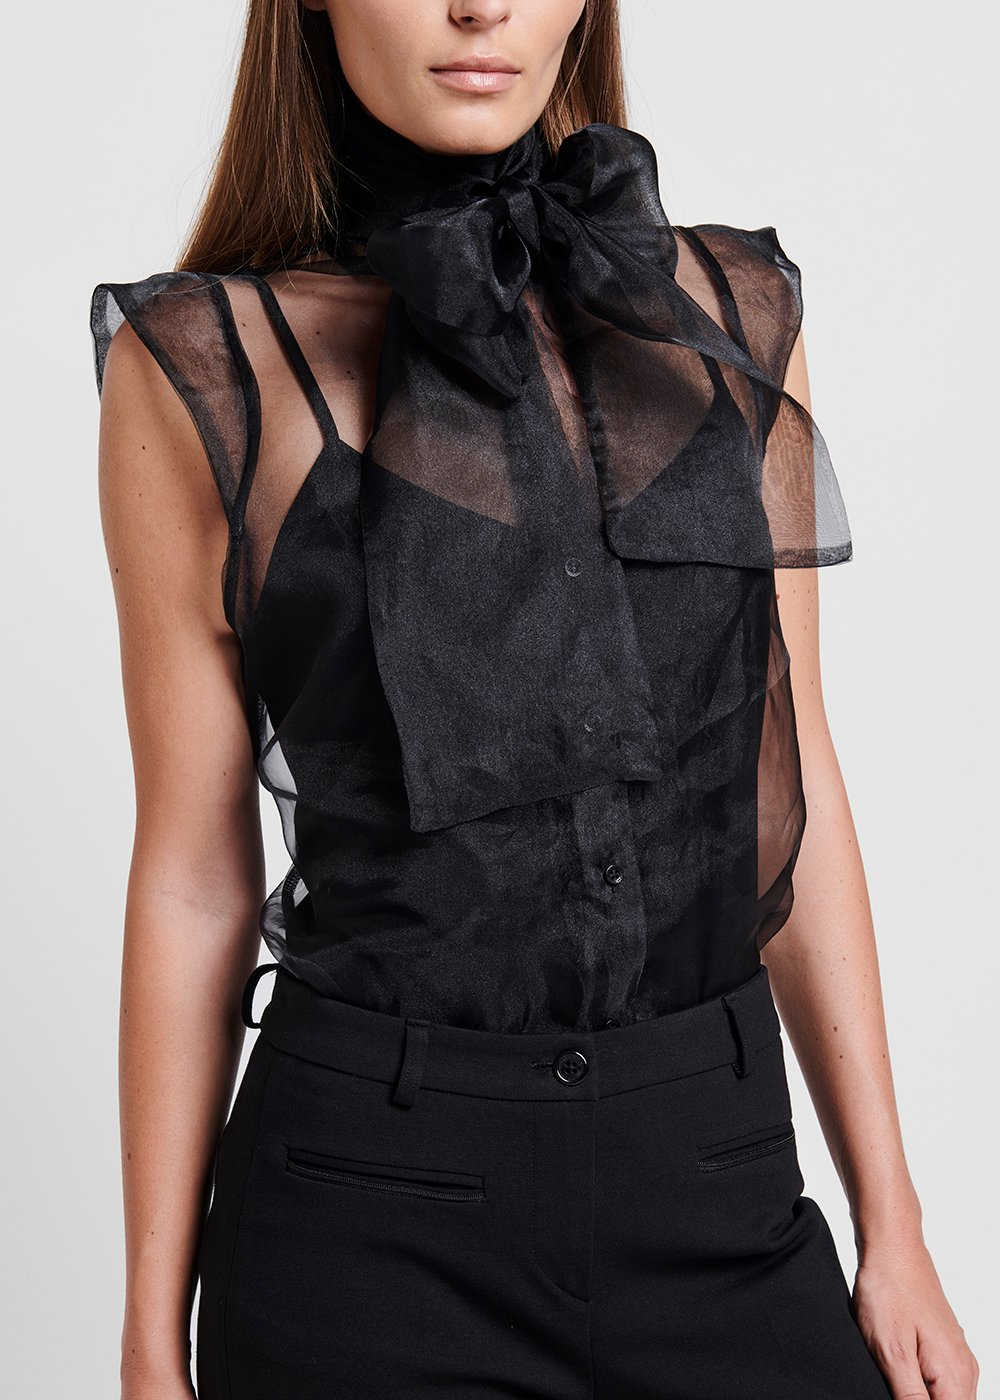 Organza top with bow on the neckline - Black - Woman